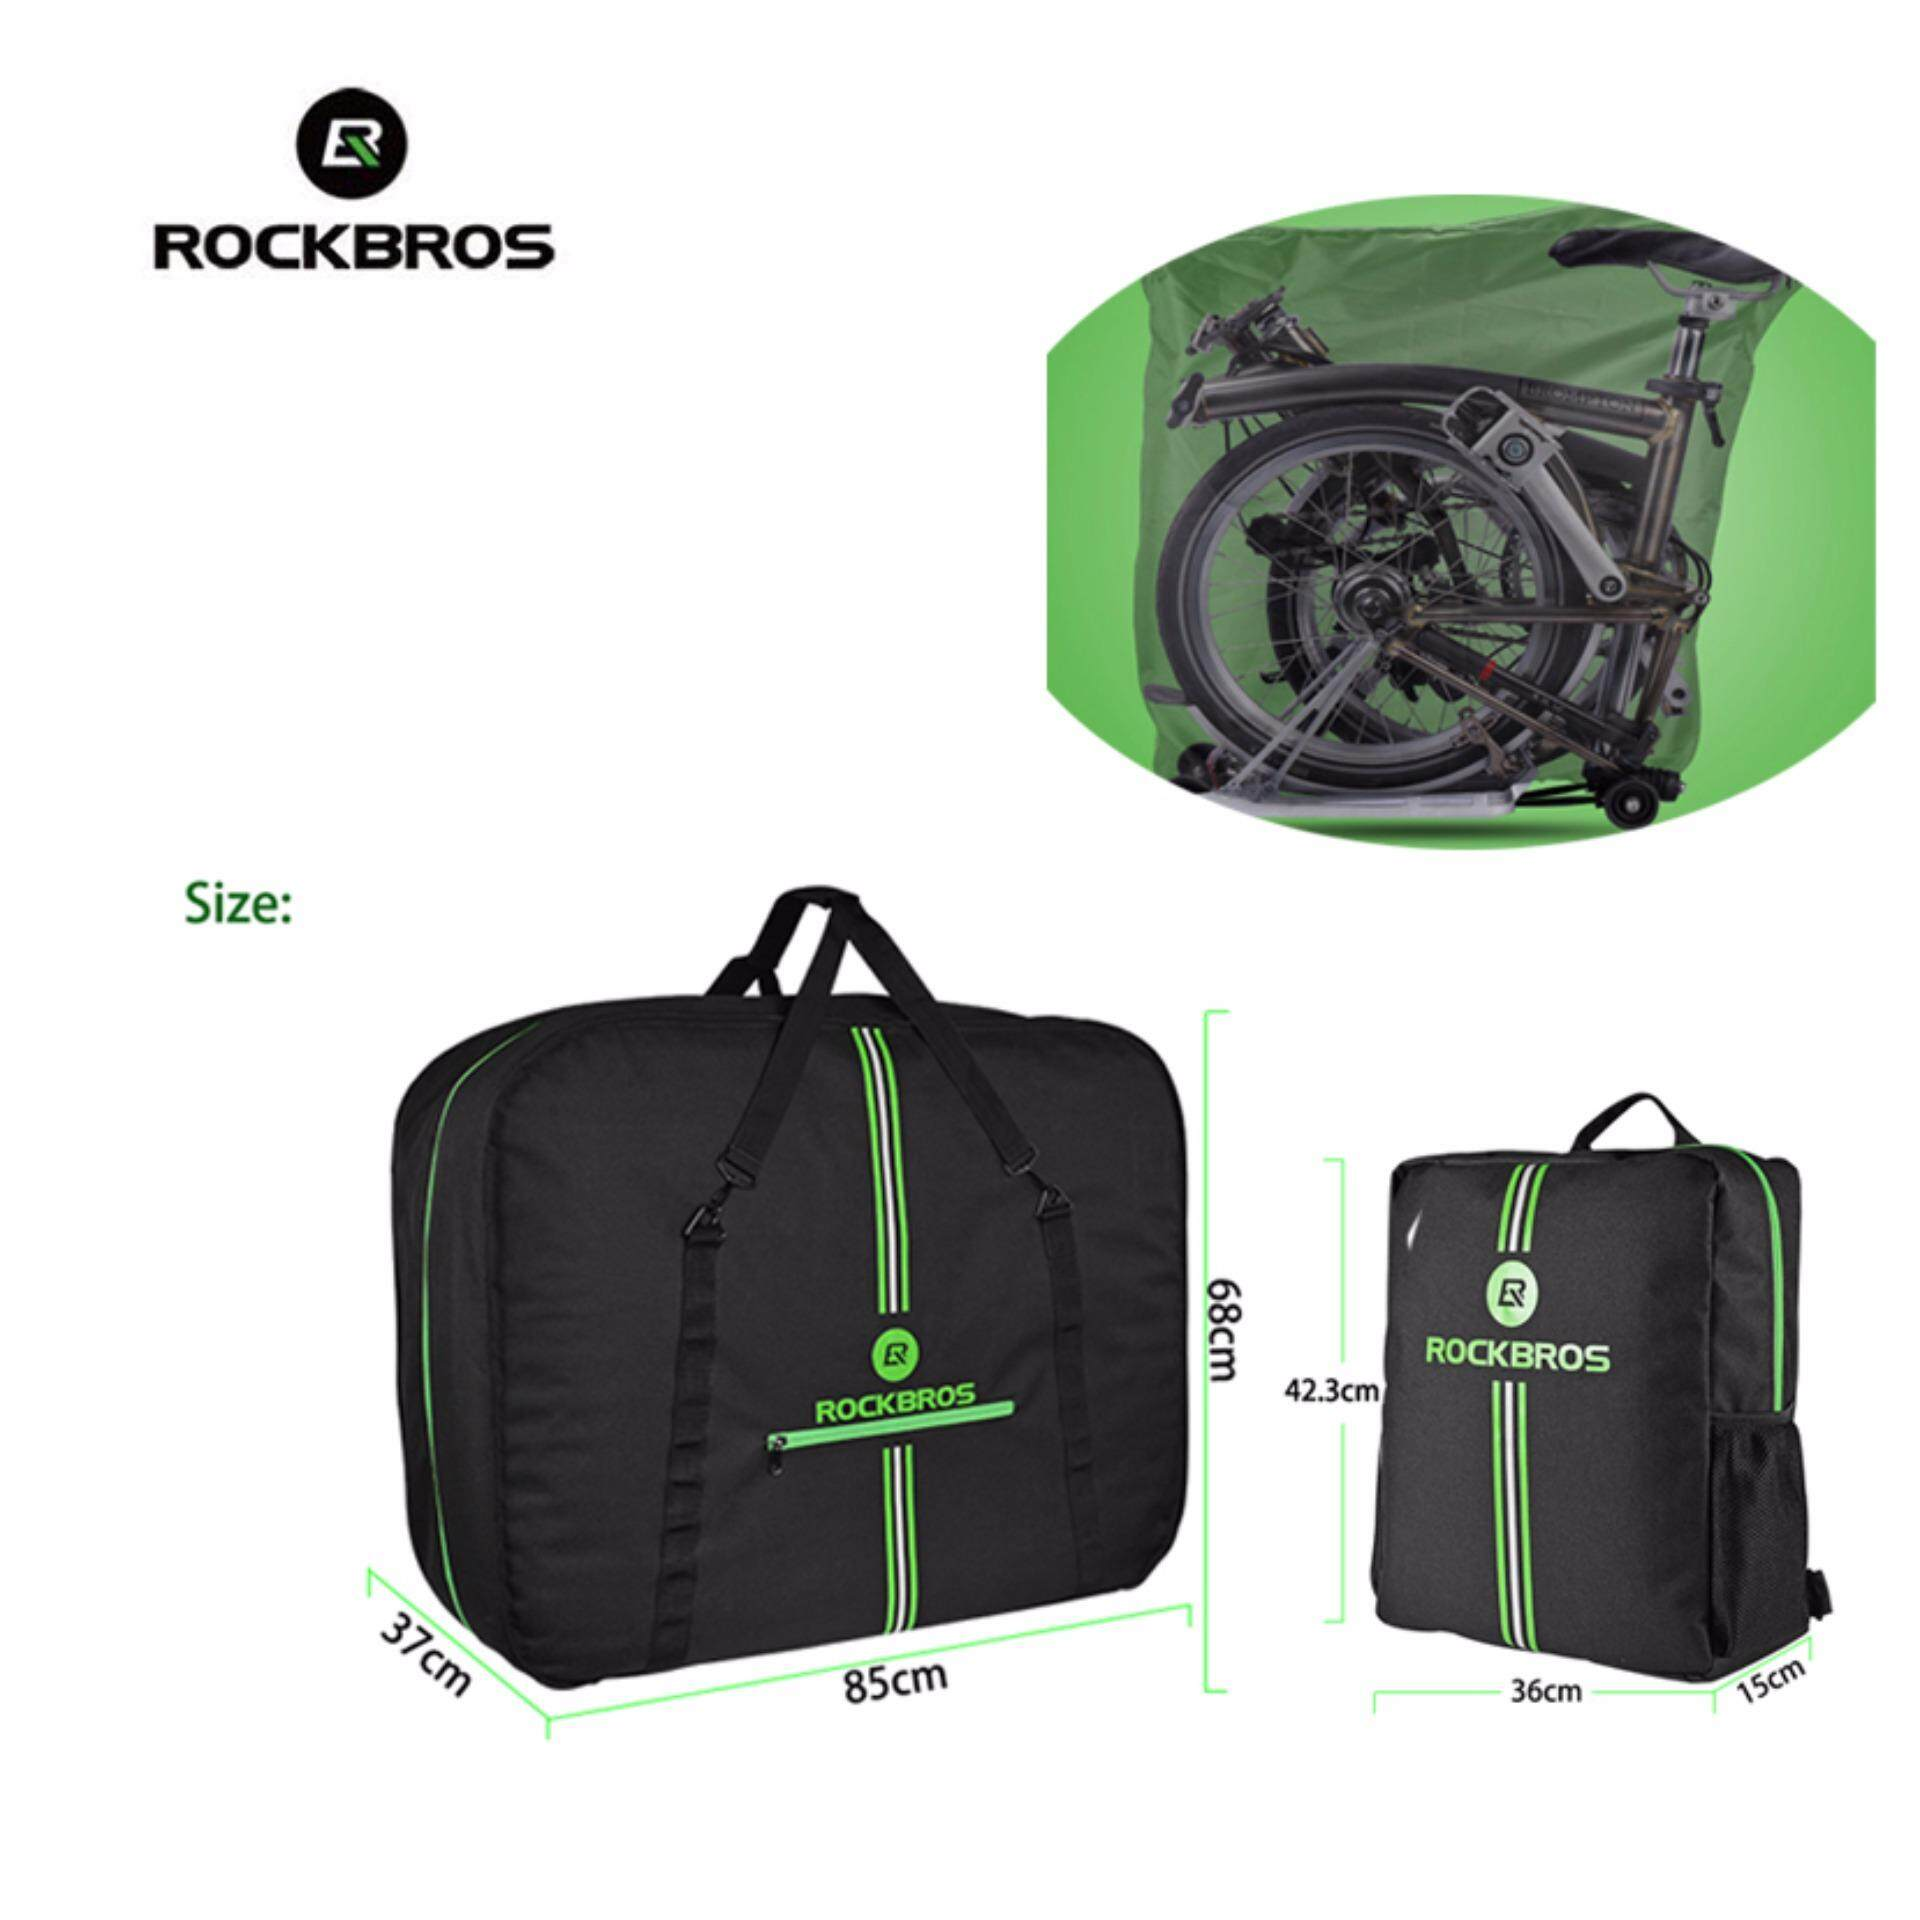 Rockbros Folding Bike Loading Package Carring Bag For Brompton As 017 Mtb Frame Triangle Pouch Waterproof 8l Jual Rb 021 Top 5 8 6 0 Phone Case Source Carrier Easliy Carry With Storage Black Green Intl